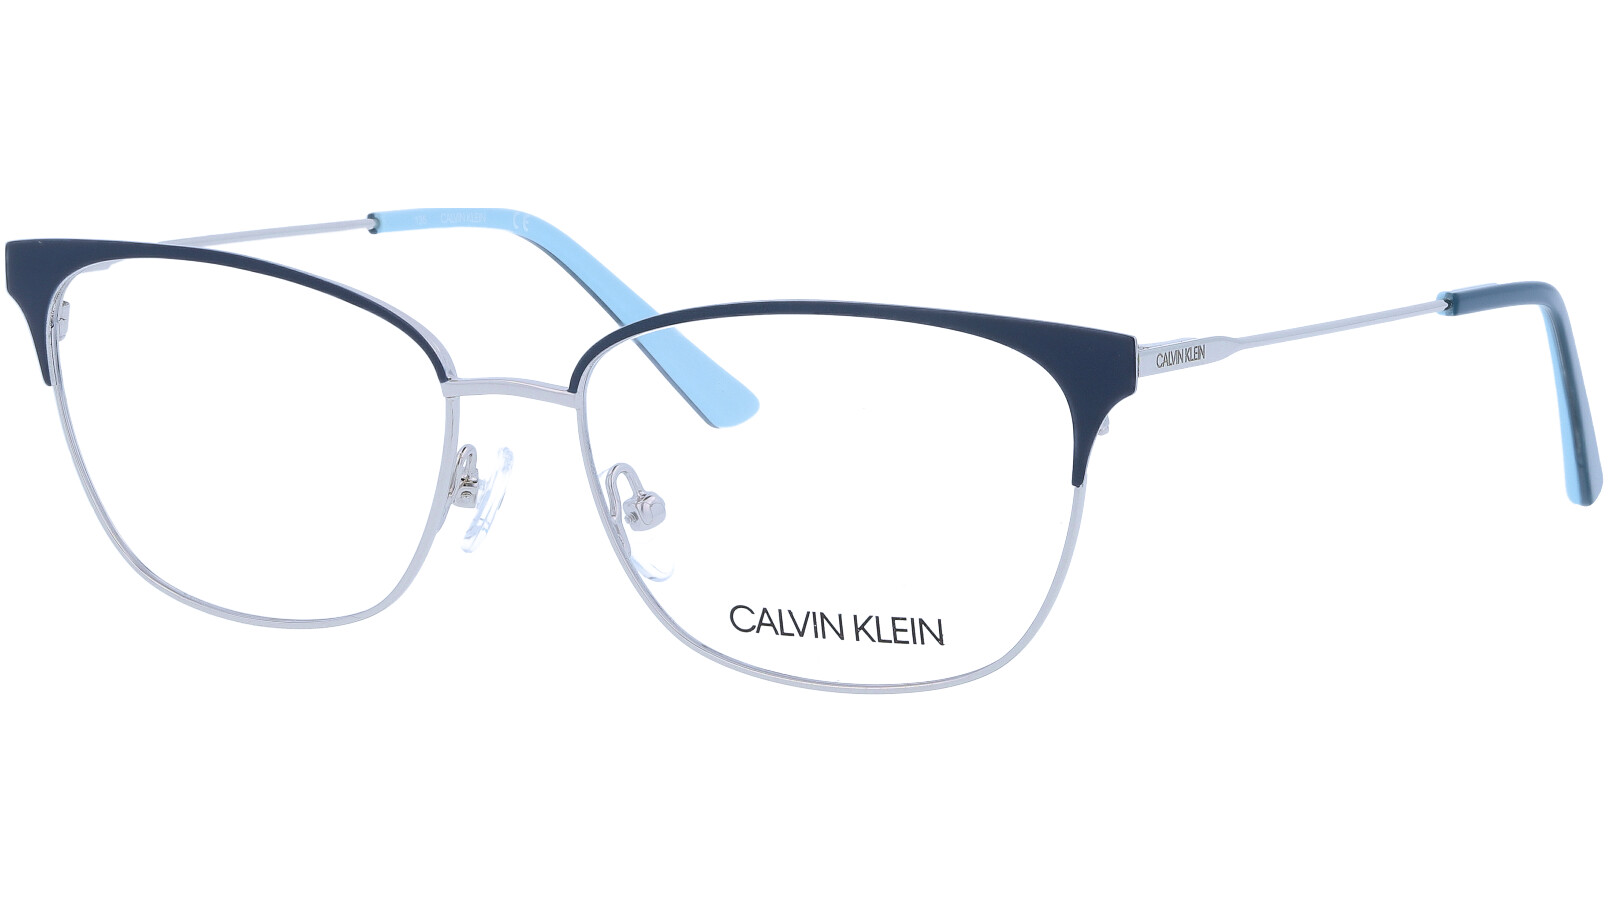 CALVIN KLEIN CK18108 430 52  BLUE Glasses